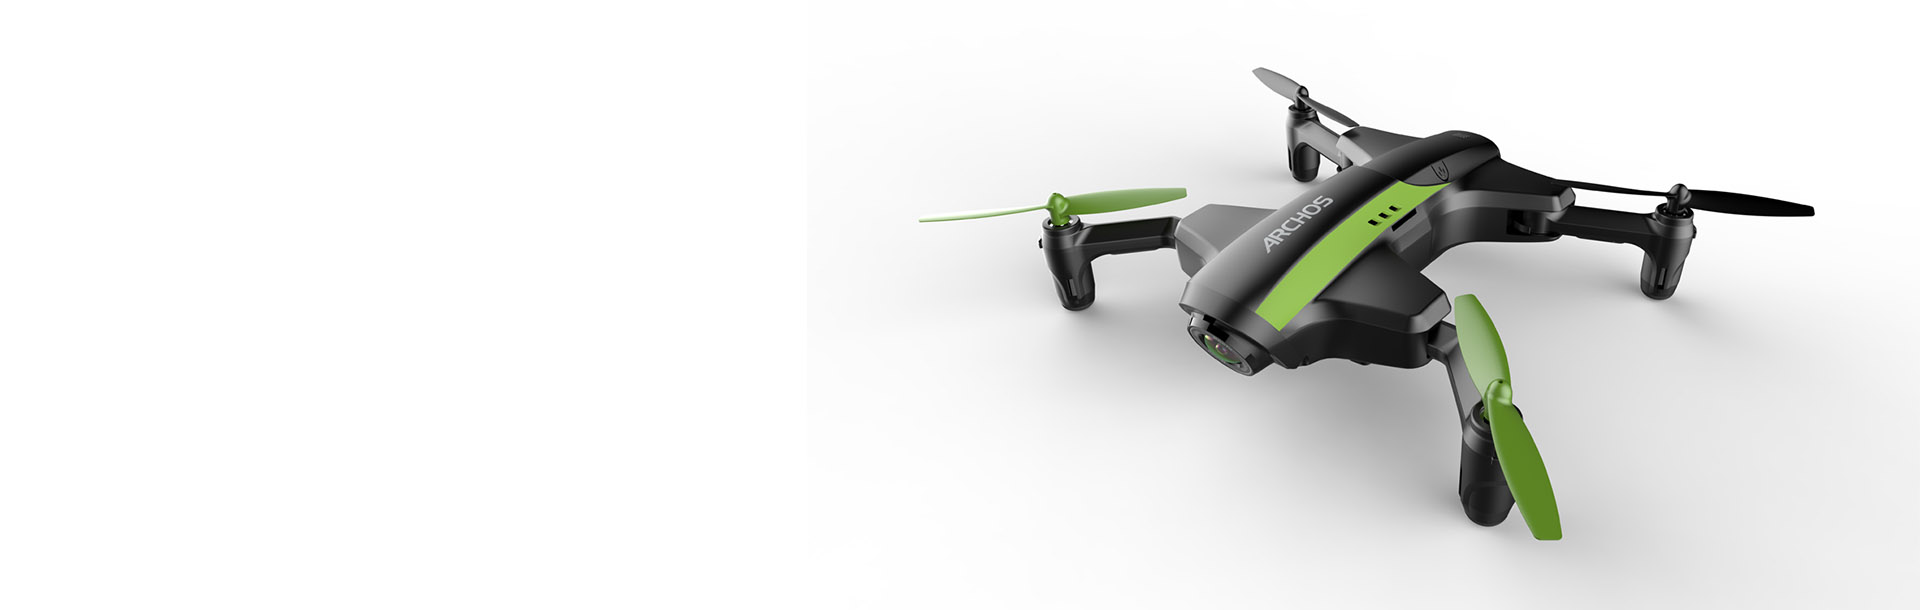 ARCHOS Drone VR - flight